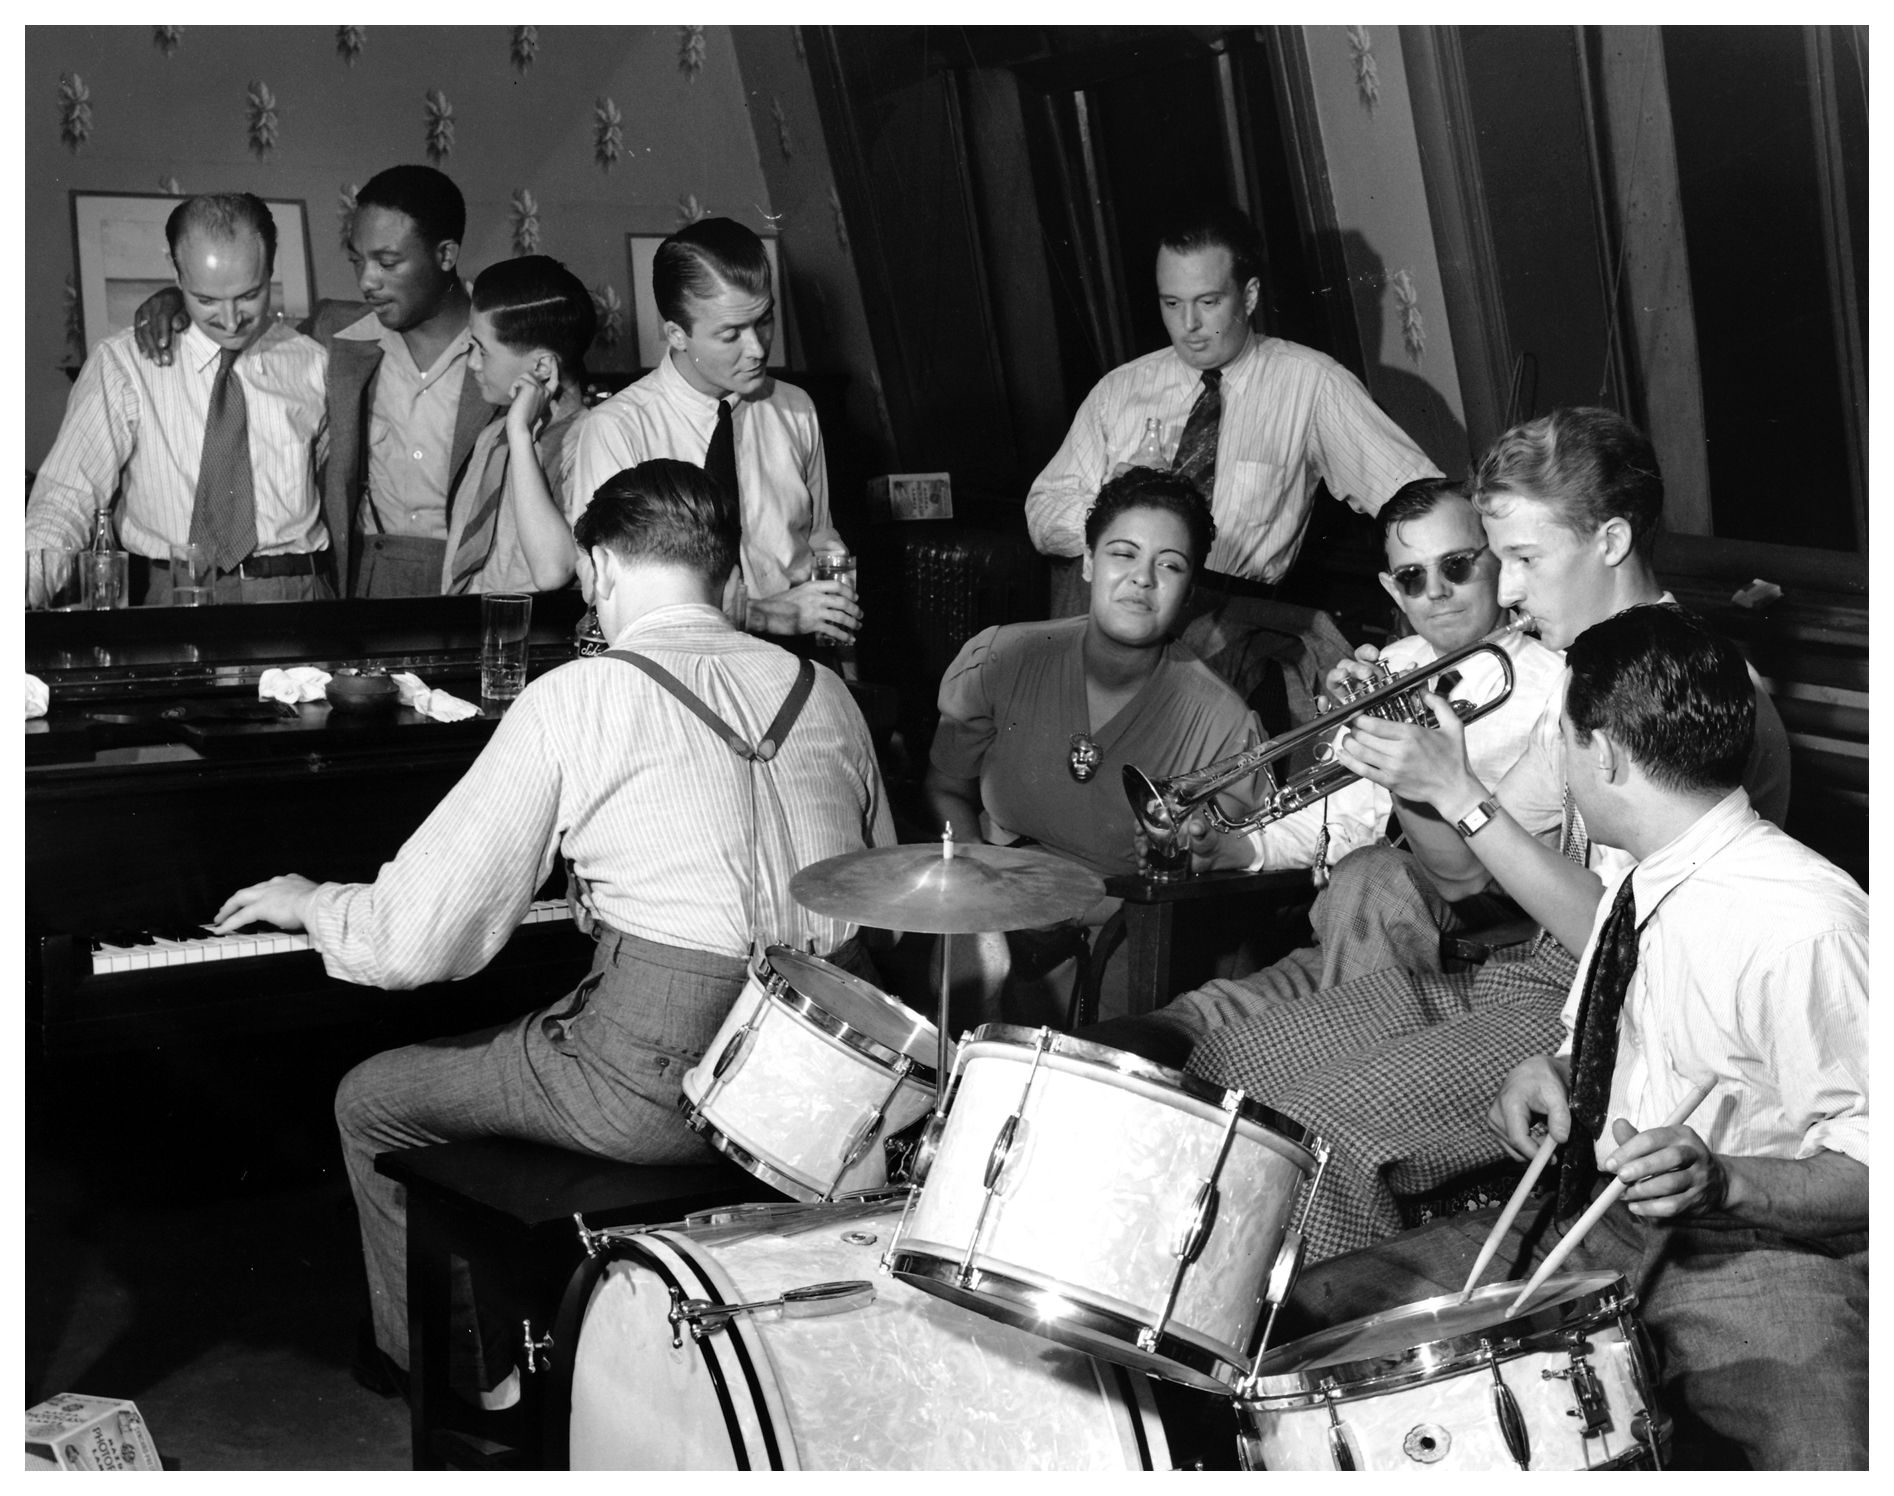 Bud Freeman,JC Higginbotham,Harry Lim,Eddie Condon,Ernie Anderson Pubblicist,Max Kaminsky's,Billie Holiday